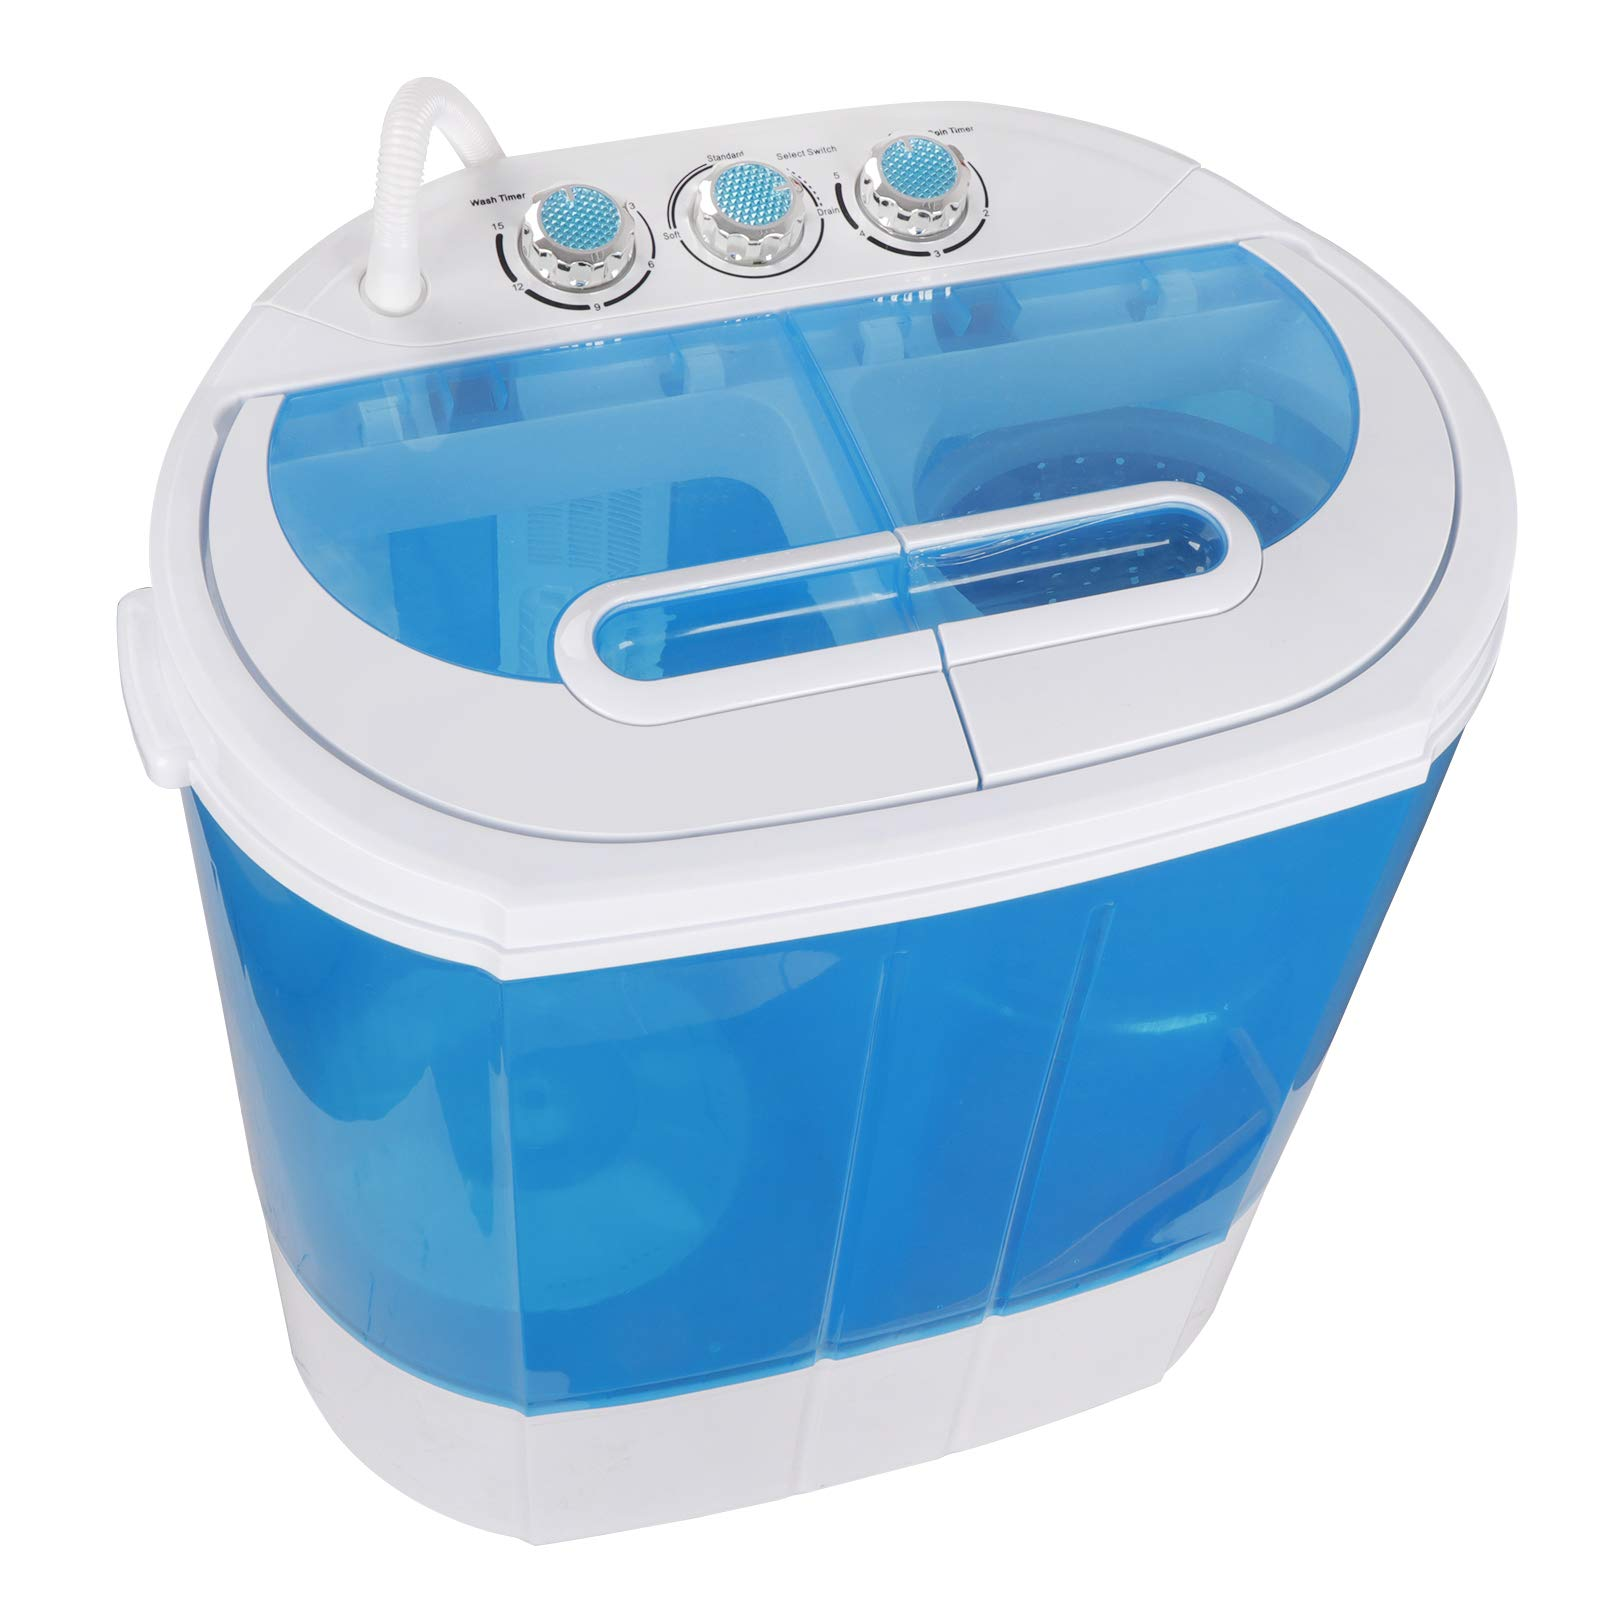 SUPER DEAL Portable Washing Machine Twin Tub 10lbs Capacity with Spin Cycle Dryer, Lightweight for Apartments, Dorm Rooms by SUPER DEAL